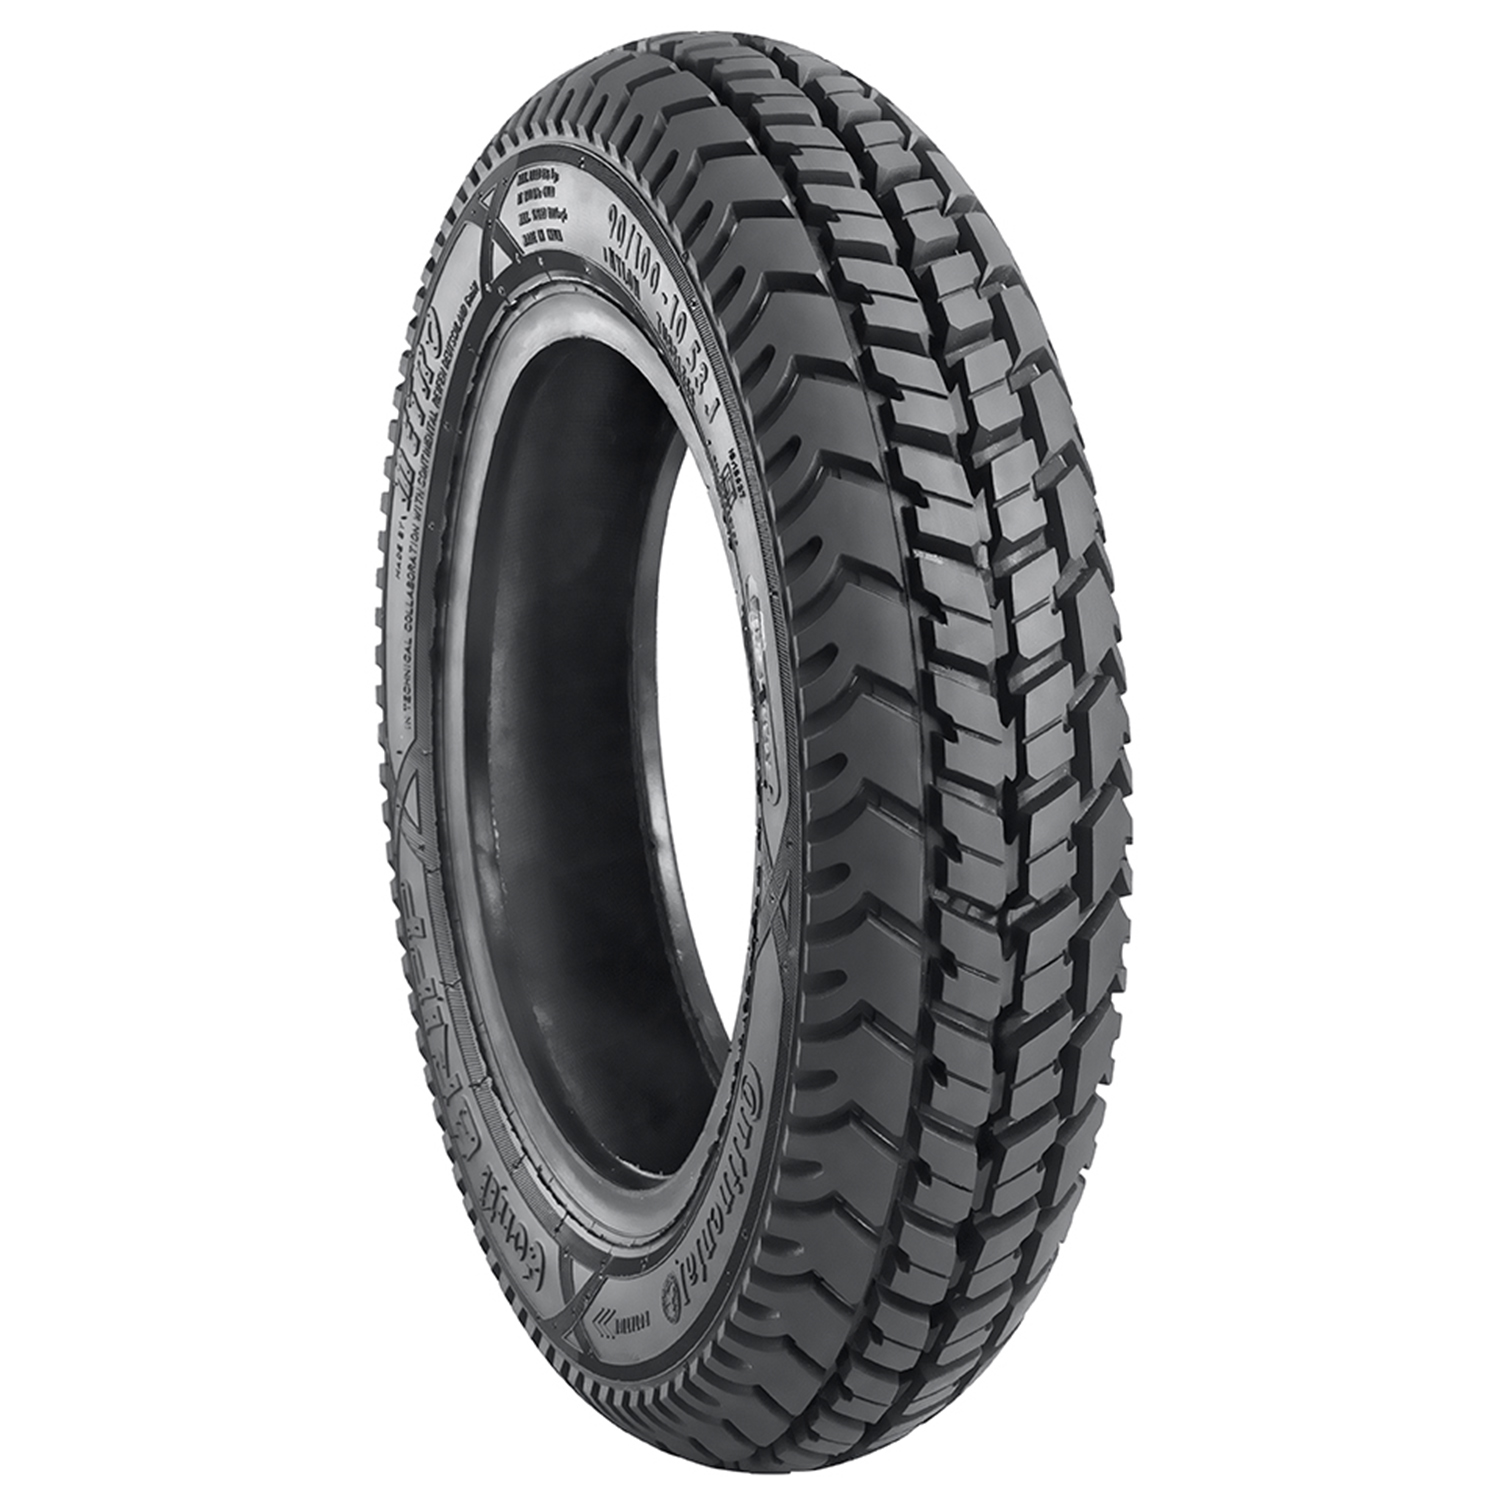 Metro CONTI GRIP 90/100 10 Requires Tube Rear Two-Wheeler Tyre